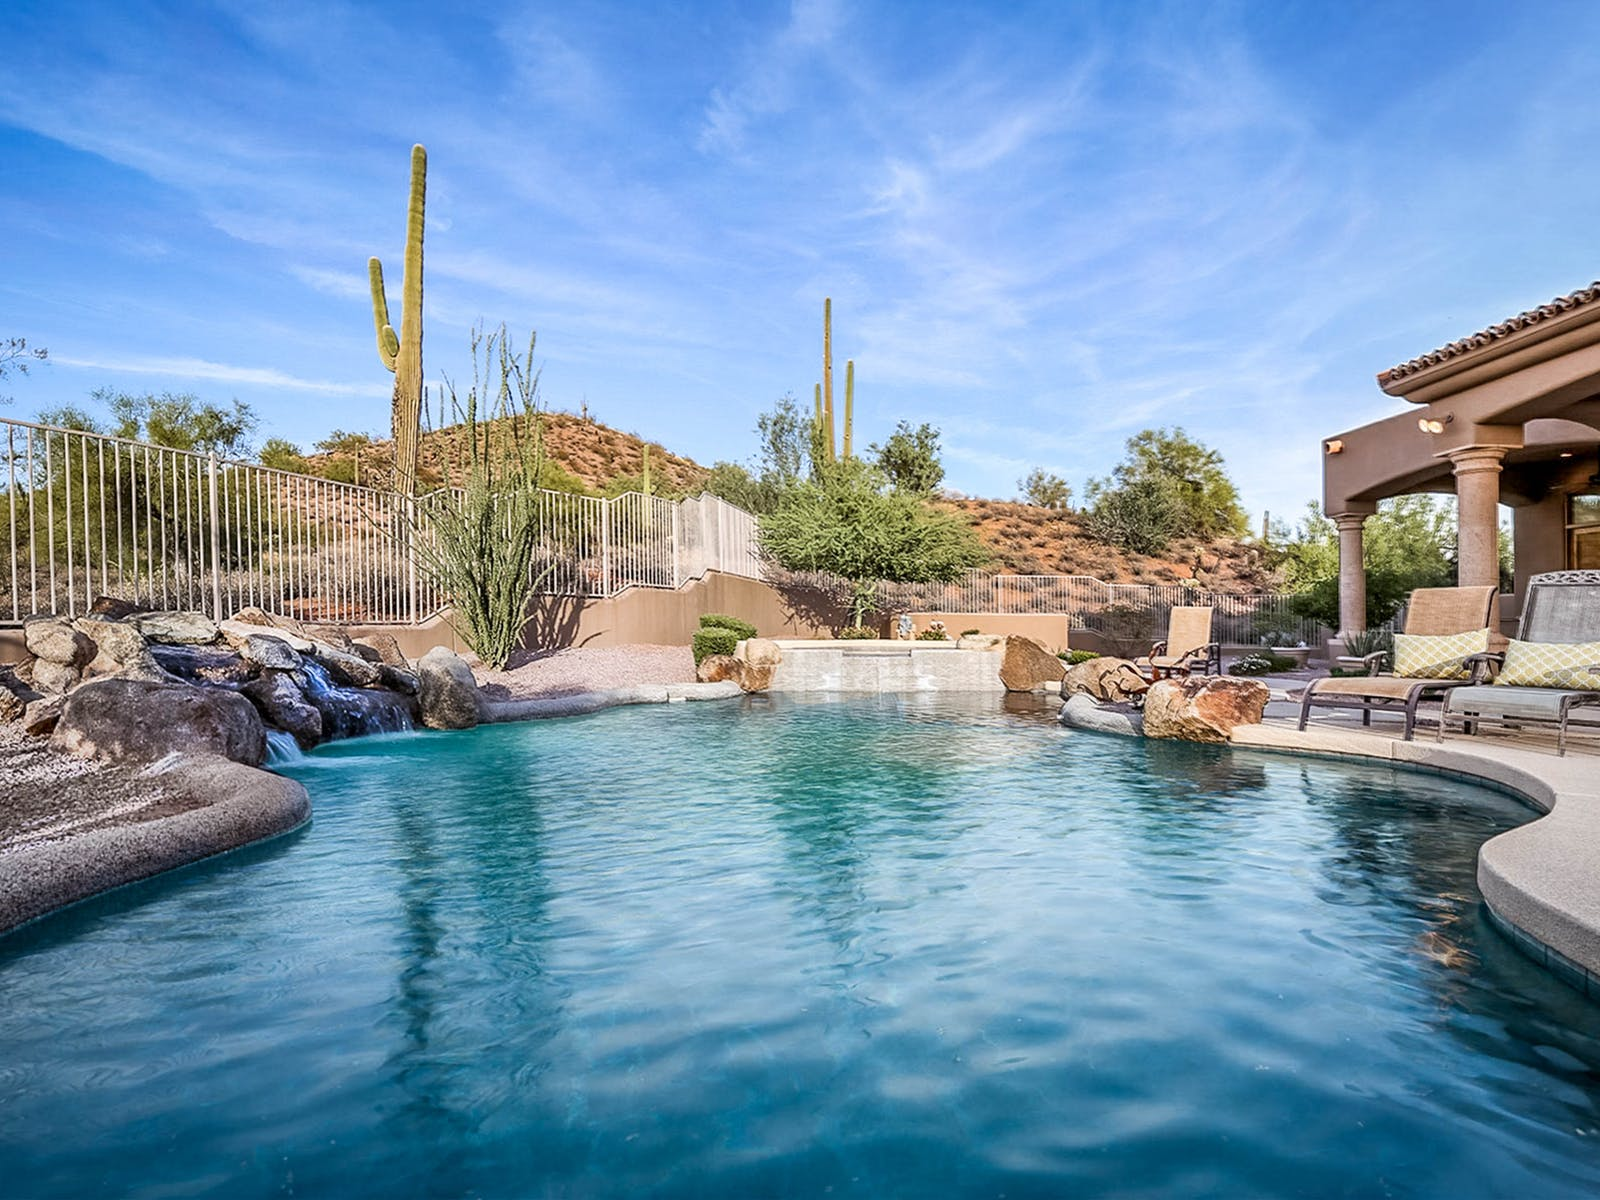 Outdoor pool with desert landscaping located in Scottsdale, AZ